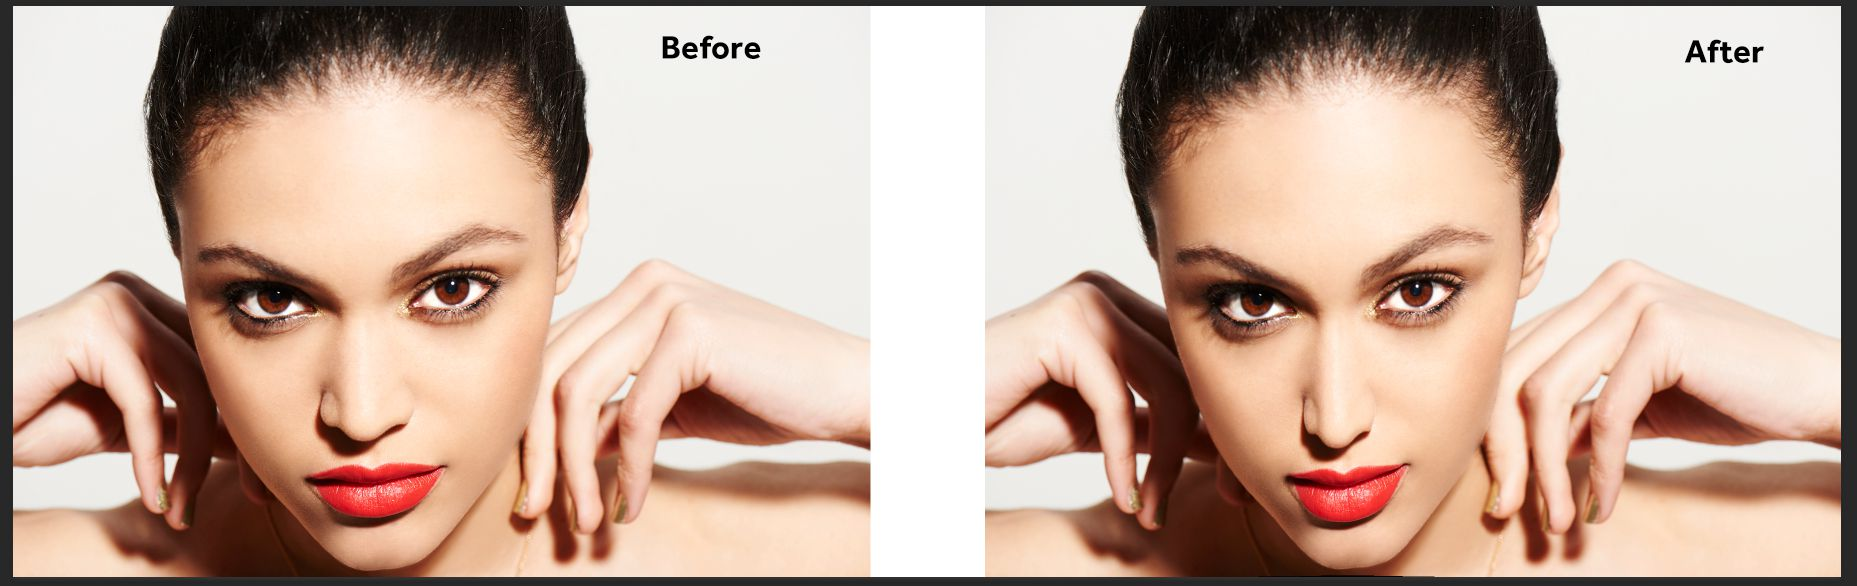 The New Face Aware Liquify Feature Of Photoshop CC 2015